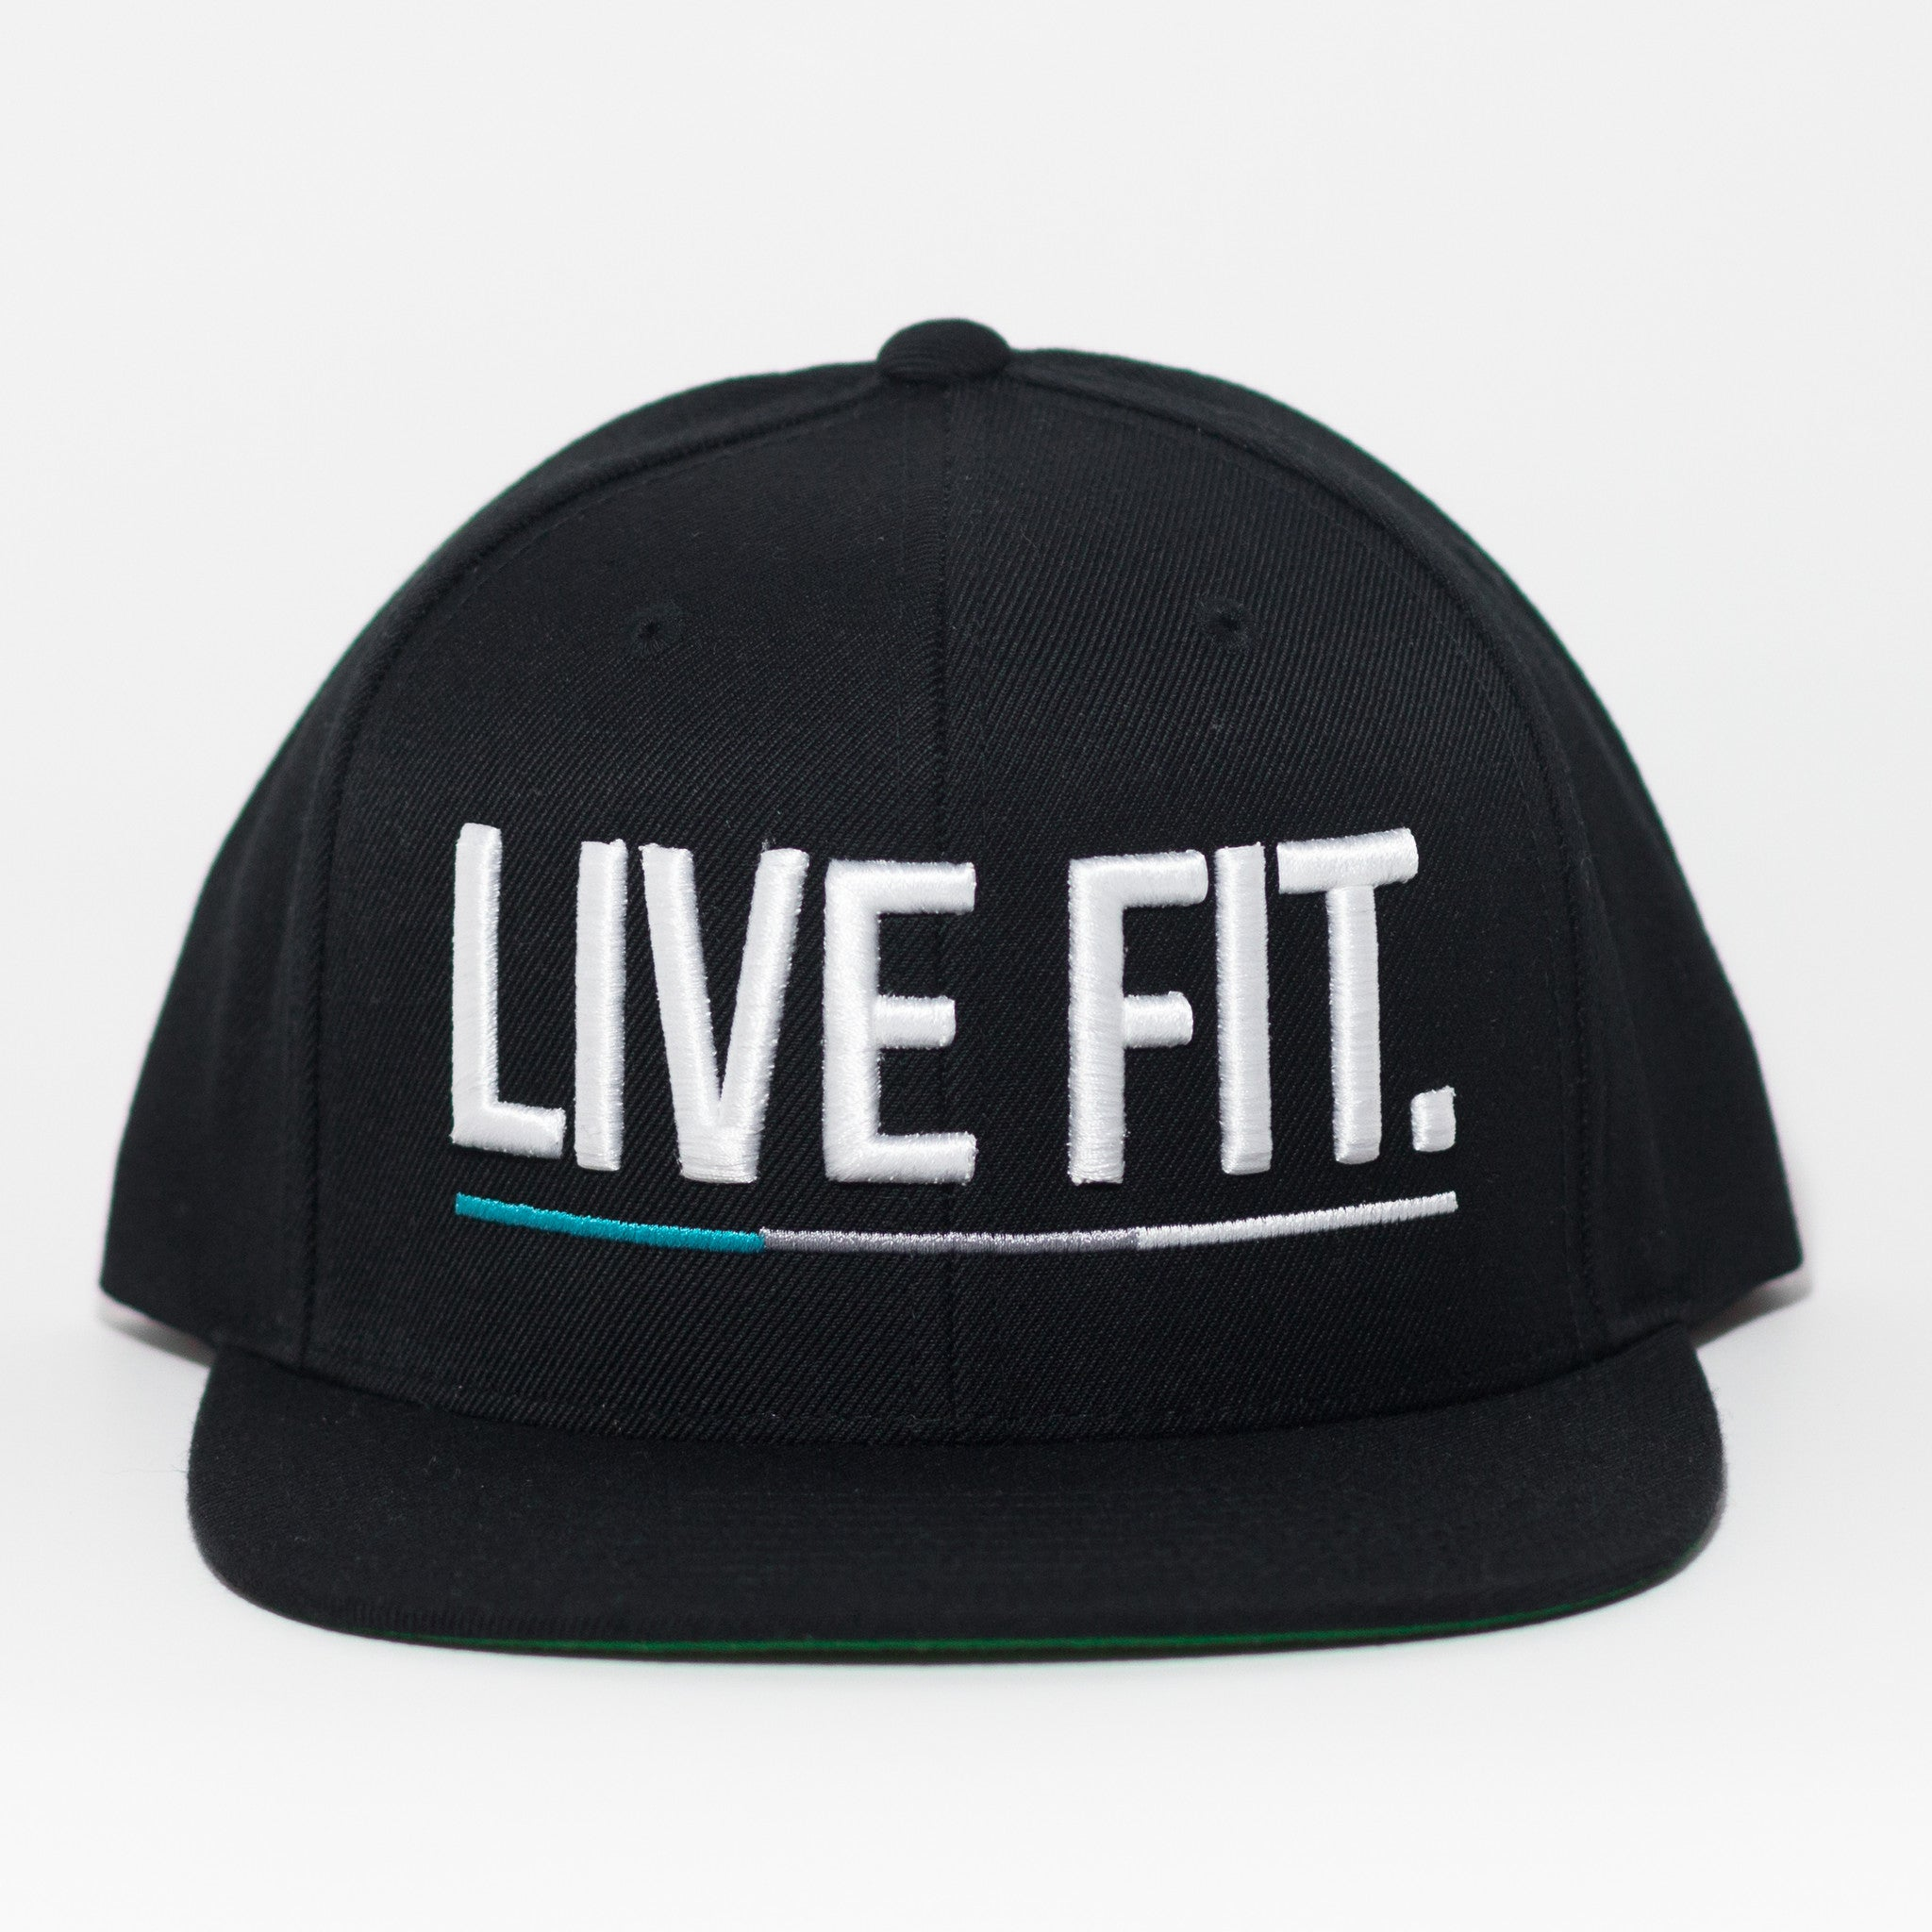 United Snapback - Black/Teal